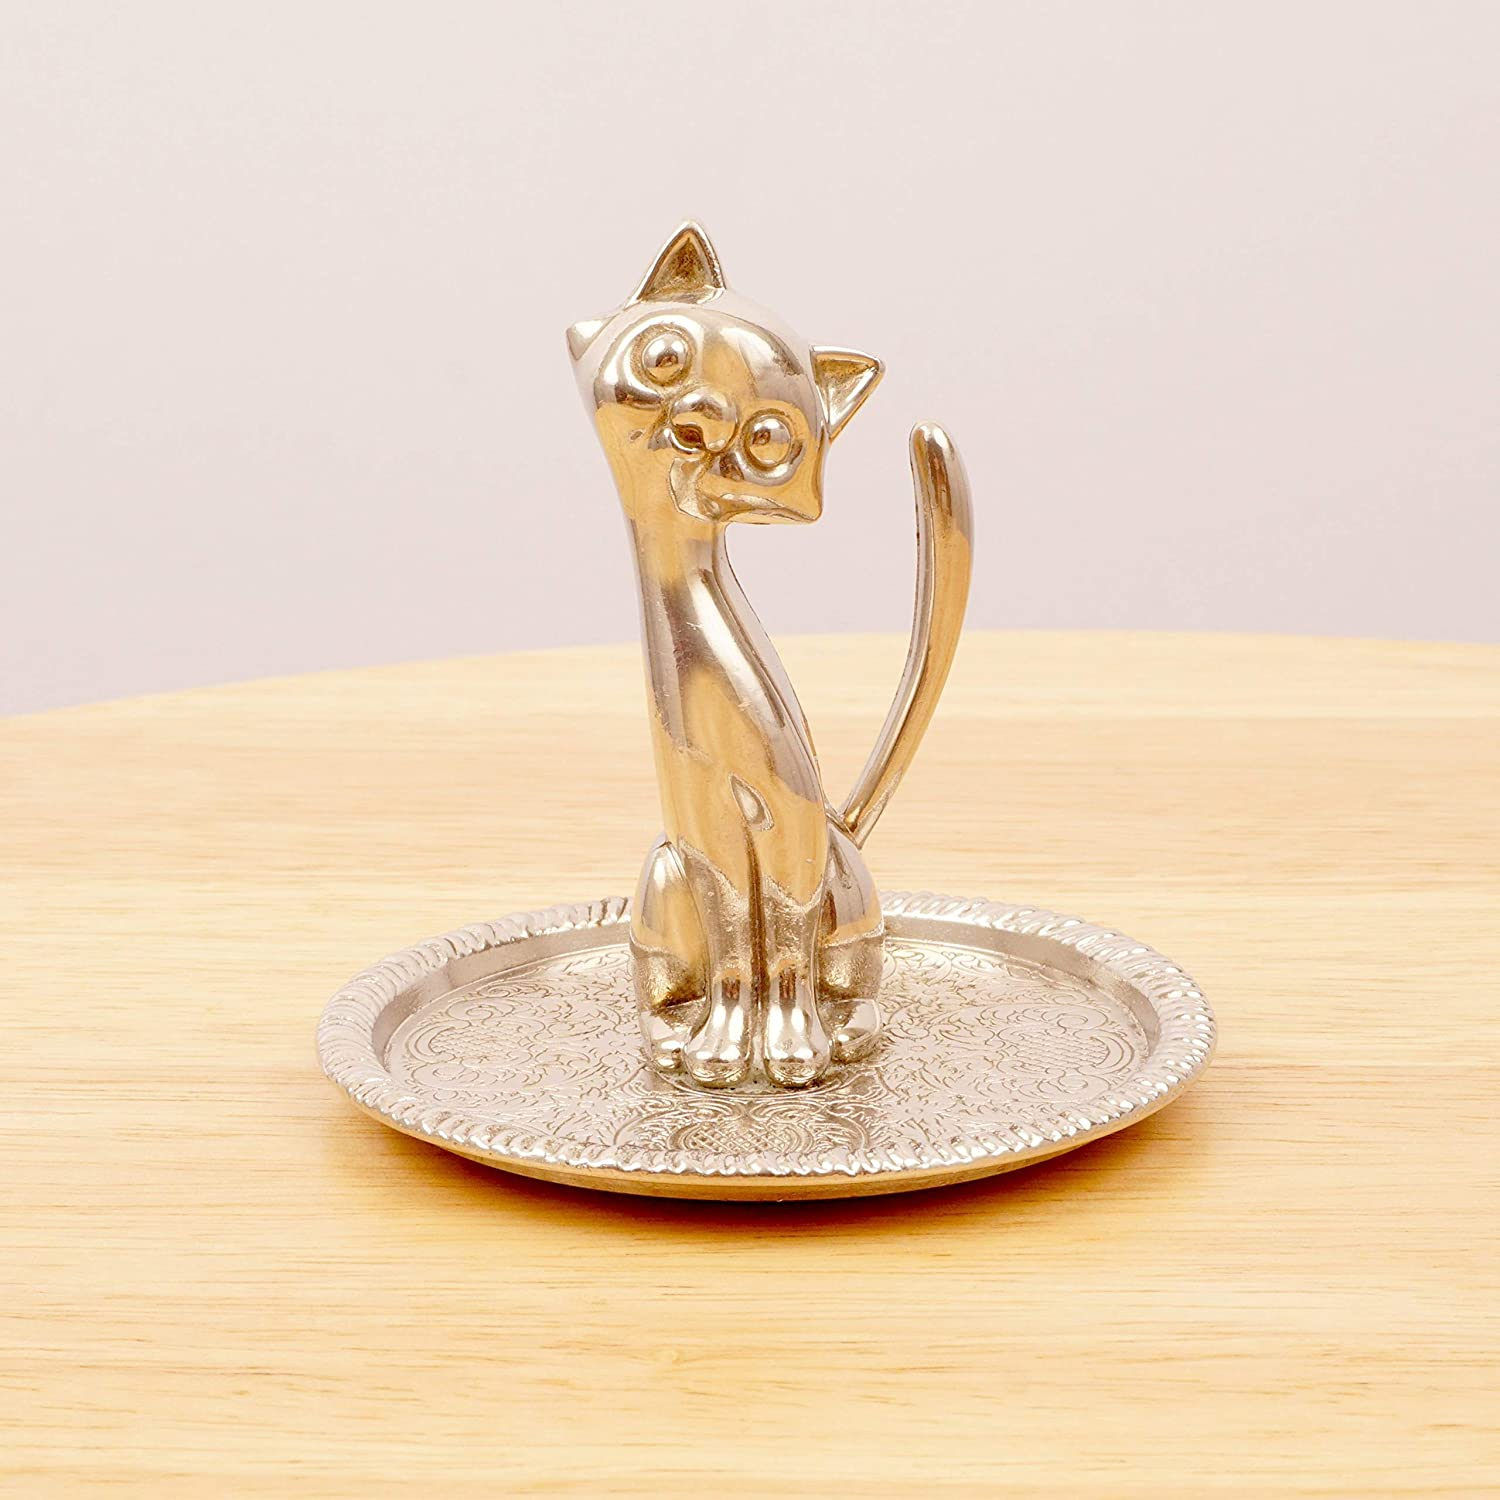 Restored by UKARETRO Ring Holder/Jewellery Plate/Tray || Cat Figurine || Floral Design || EP Zinc Alloy Silver || Blue Fabric Base